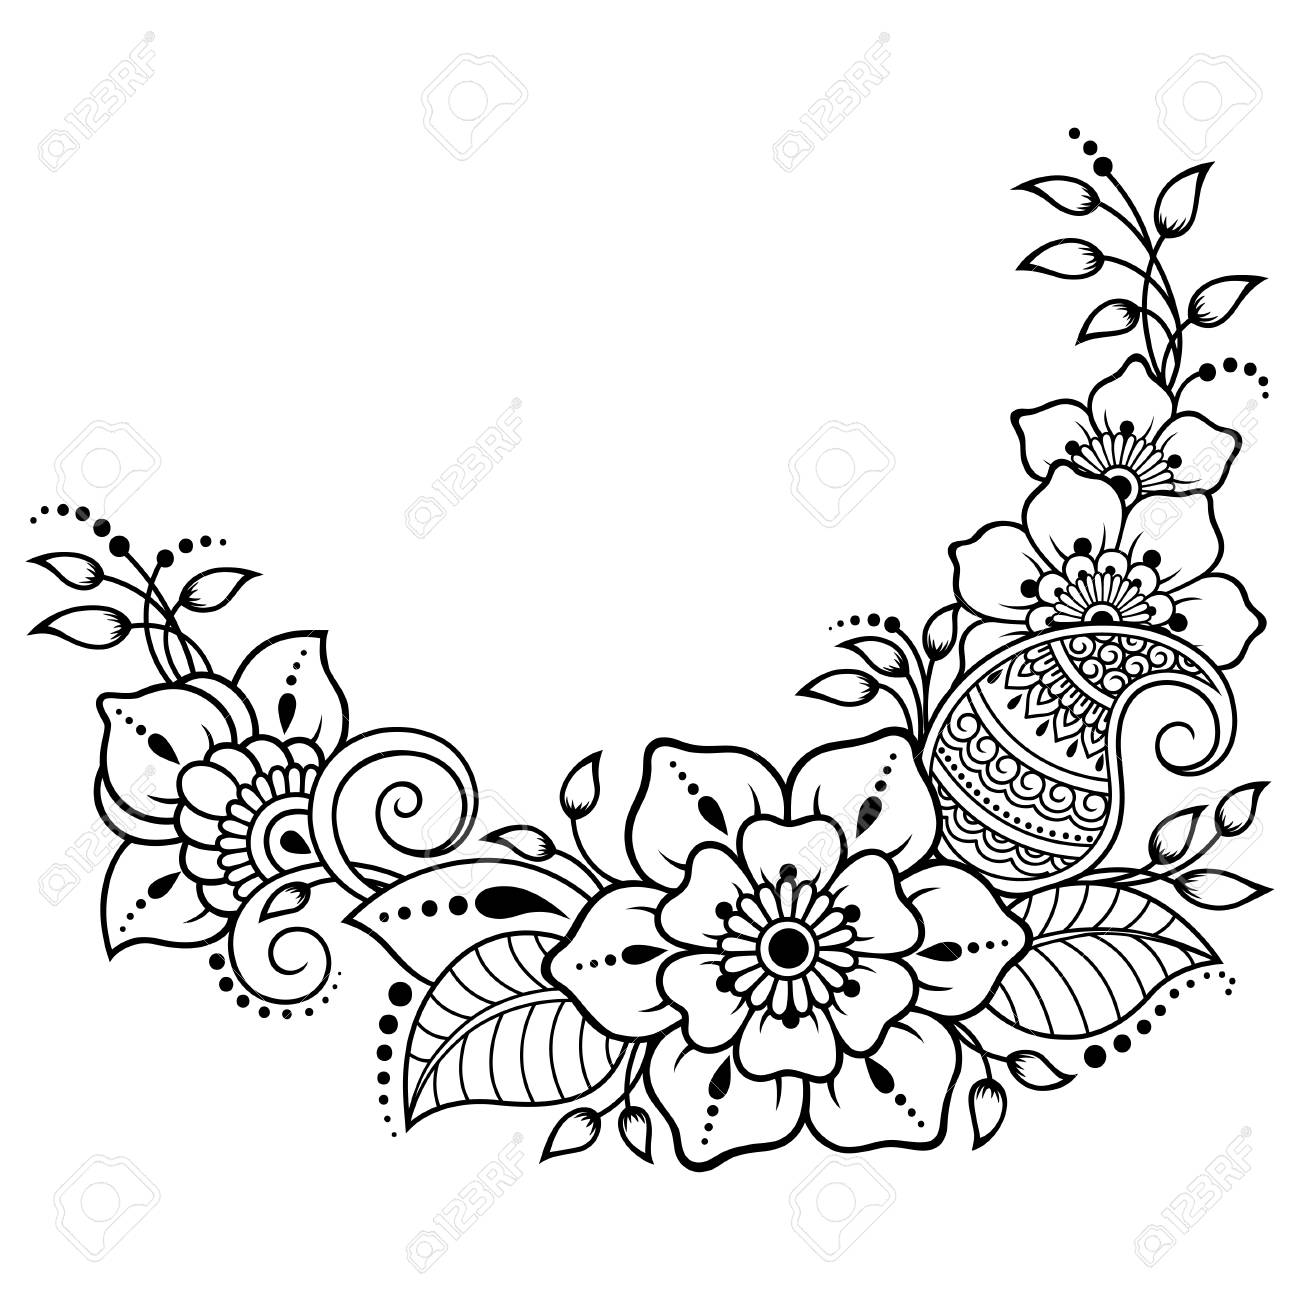 Mehndi Flower Pattern For Henna Drawing And Tattoo Decoration